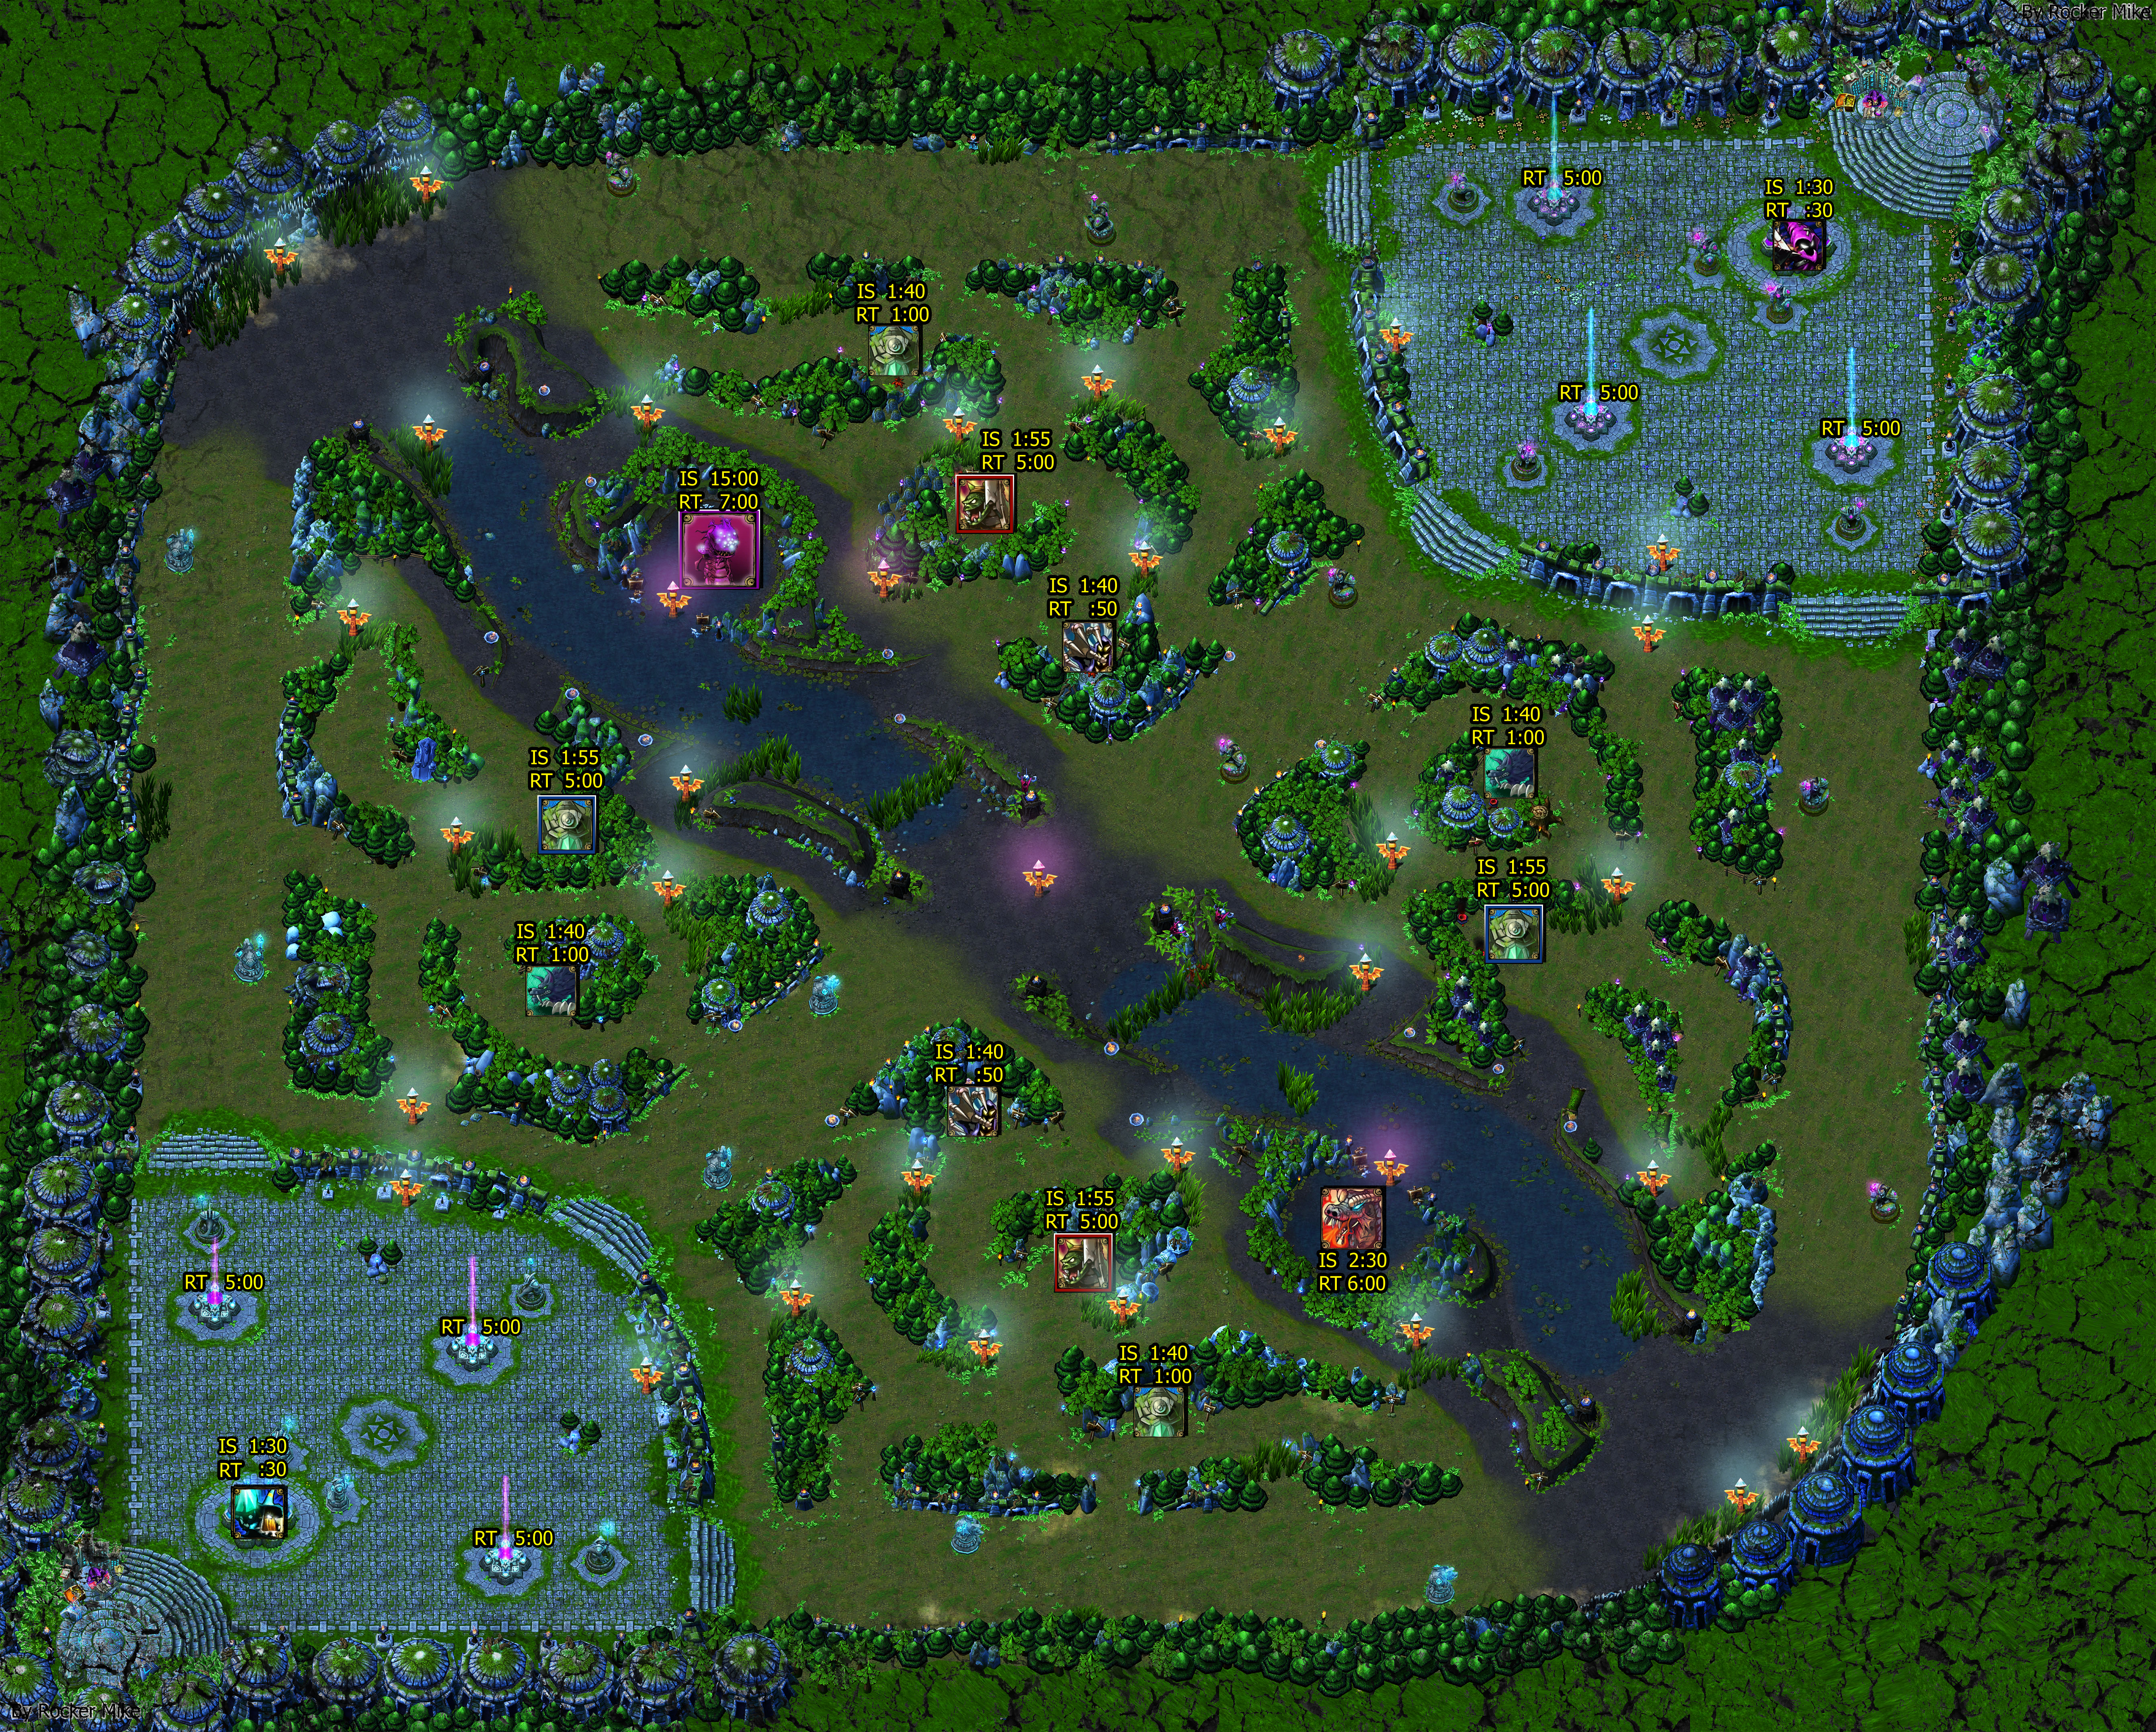 summoner s rift warding and spawn timers by rockermike on deviantart